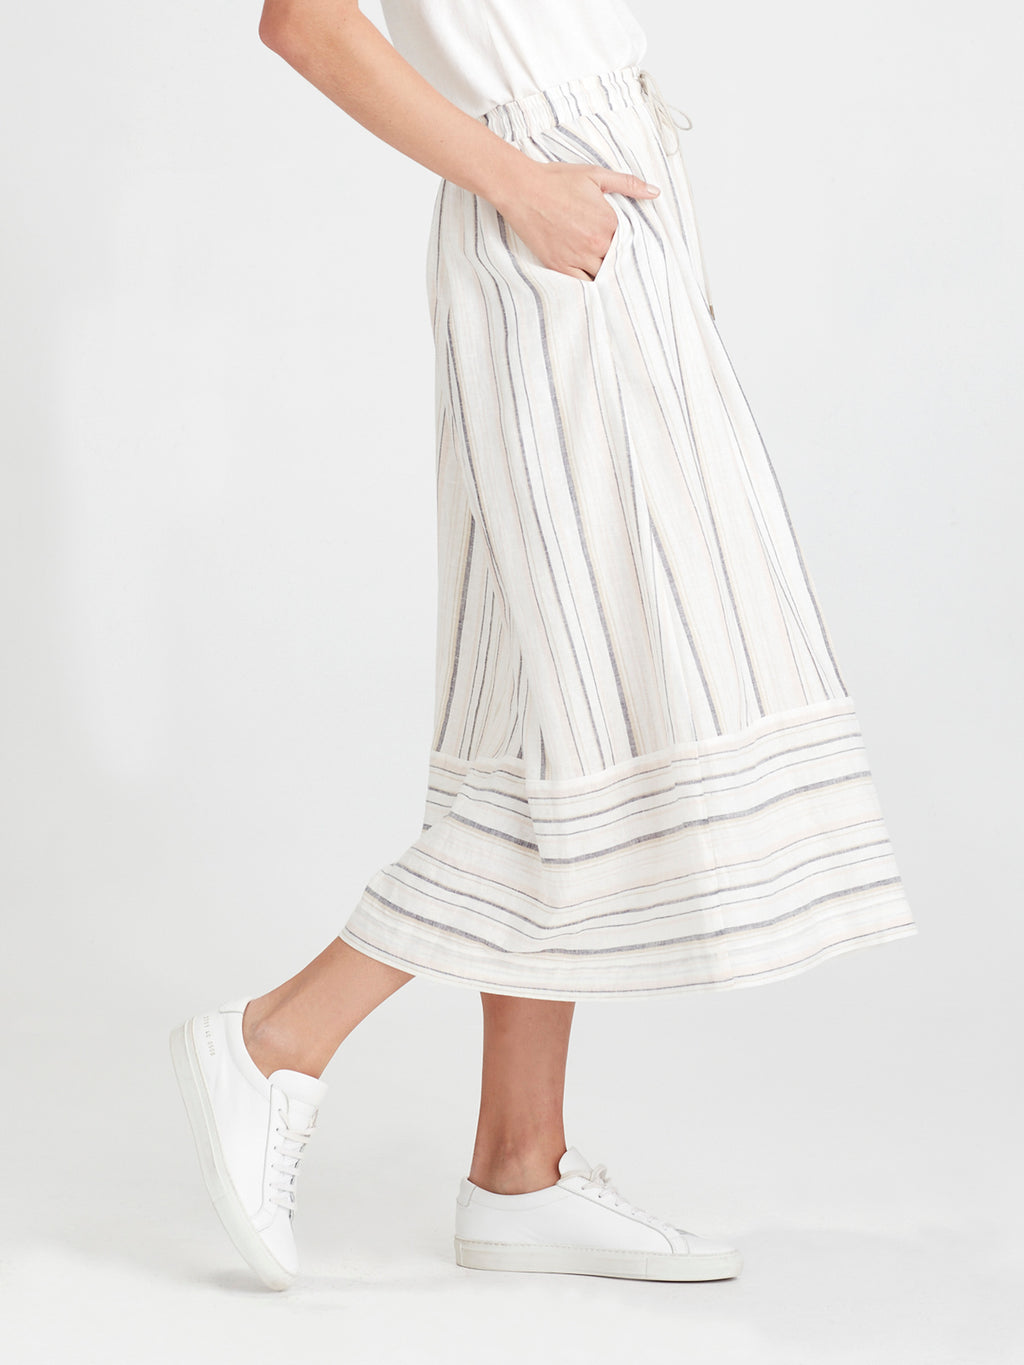 Karina Skirt (Summer Stripe Linen) Candy